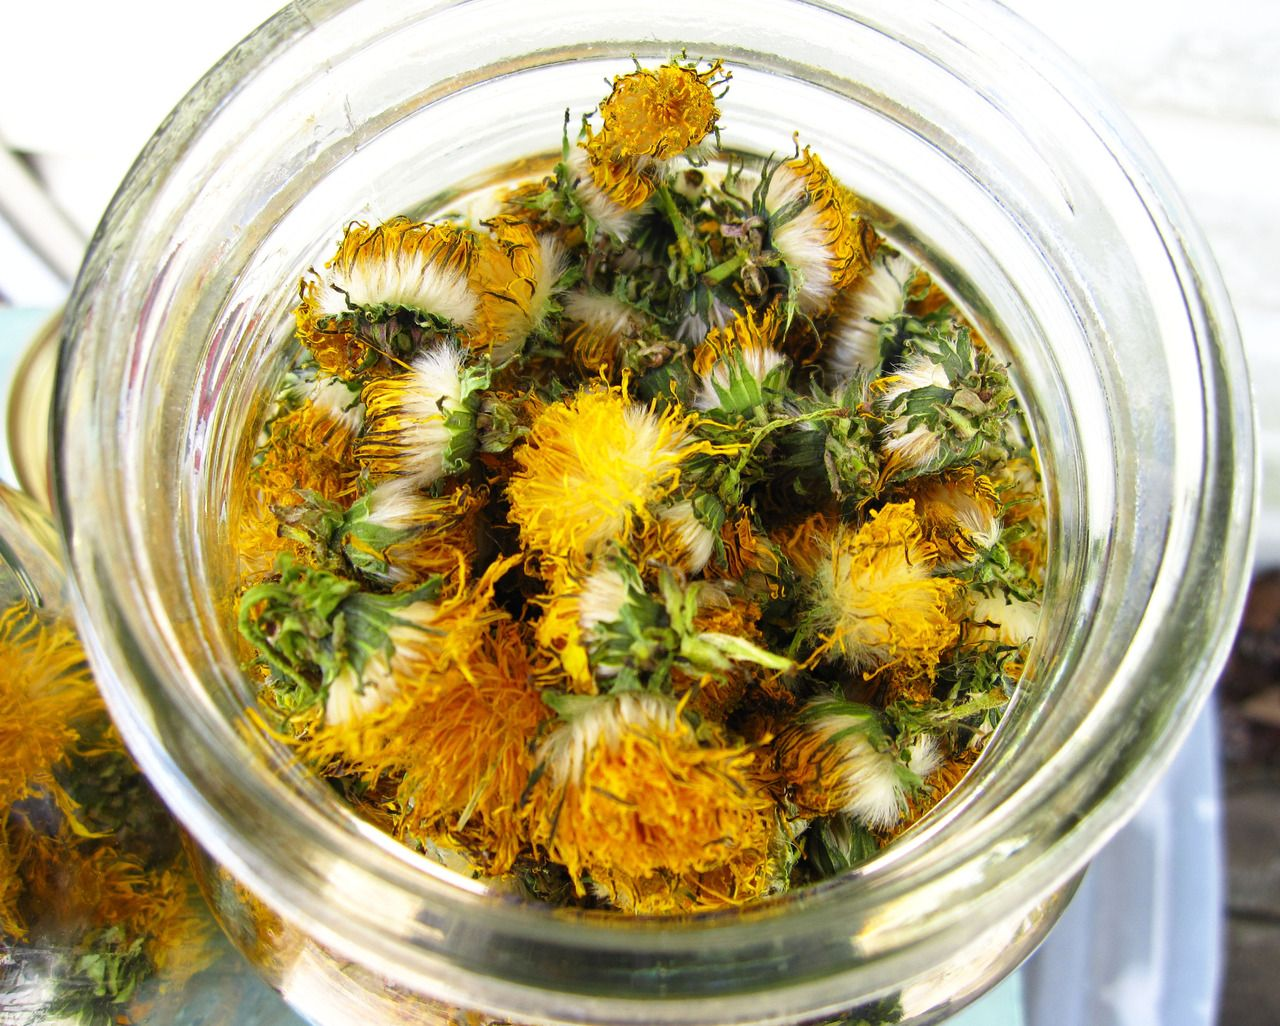 Dandelion Flowers That I Dried This Summer To Sell In My Shop Dandelion Flower Dandelion Dried Lemon